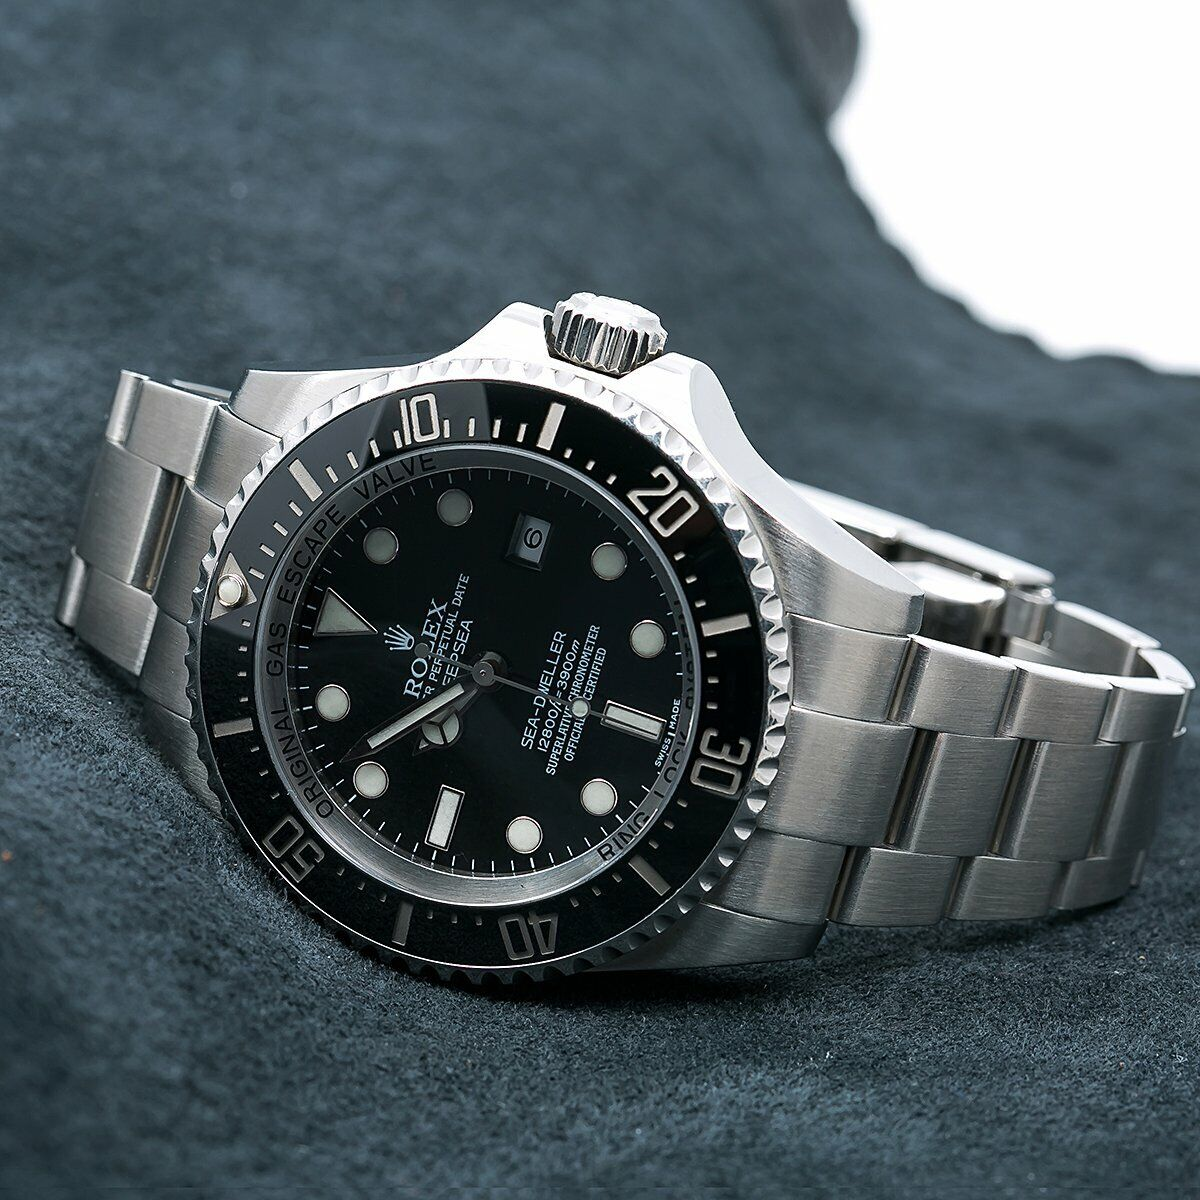 Details about Rolex Sea,Dweller Deepsea 116660 44MM Black Dial With  Stainless Steel Bracelet